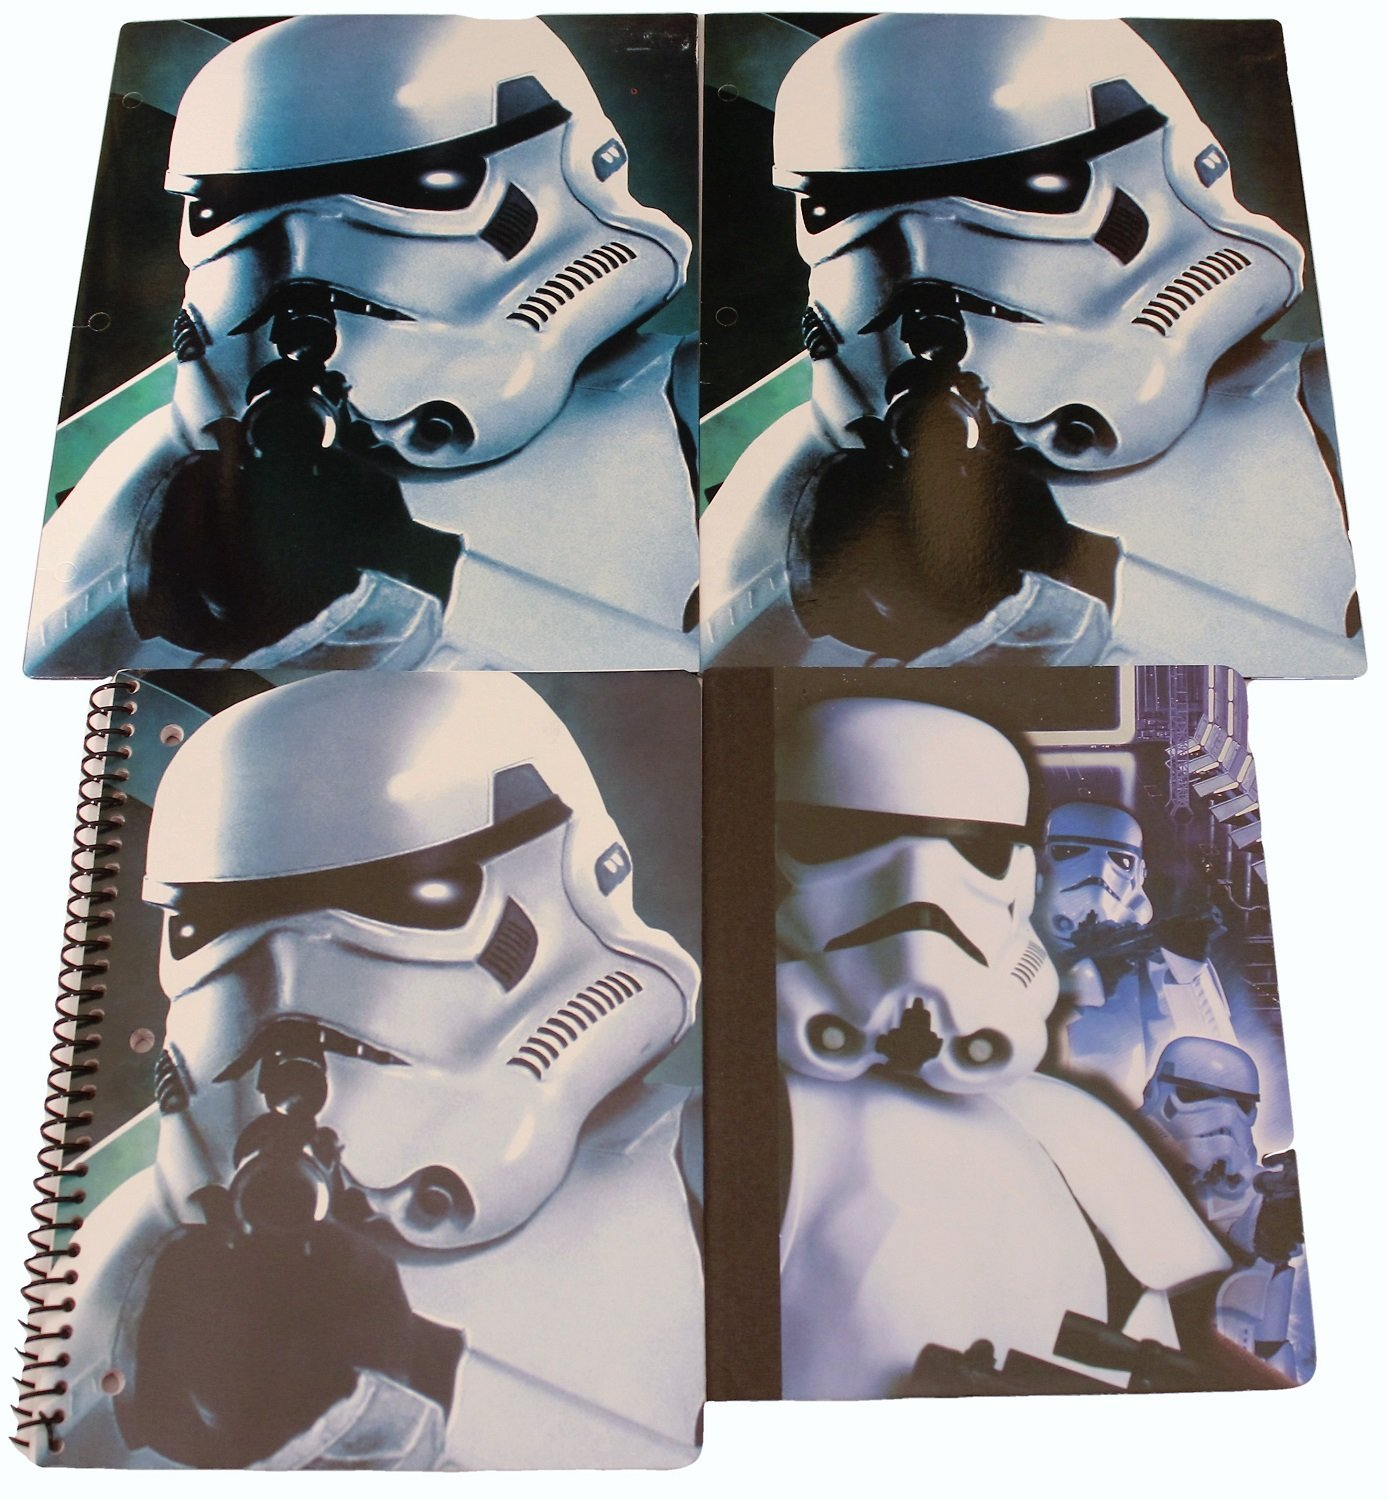 Star Wars Back to School Classroom Supply Bundle for Elementary through College Students: 1 Composition Notebook, 1 Spiral Notebook & 2 Pocket Folders (Blue Stormtrooper On Duty)